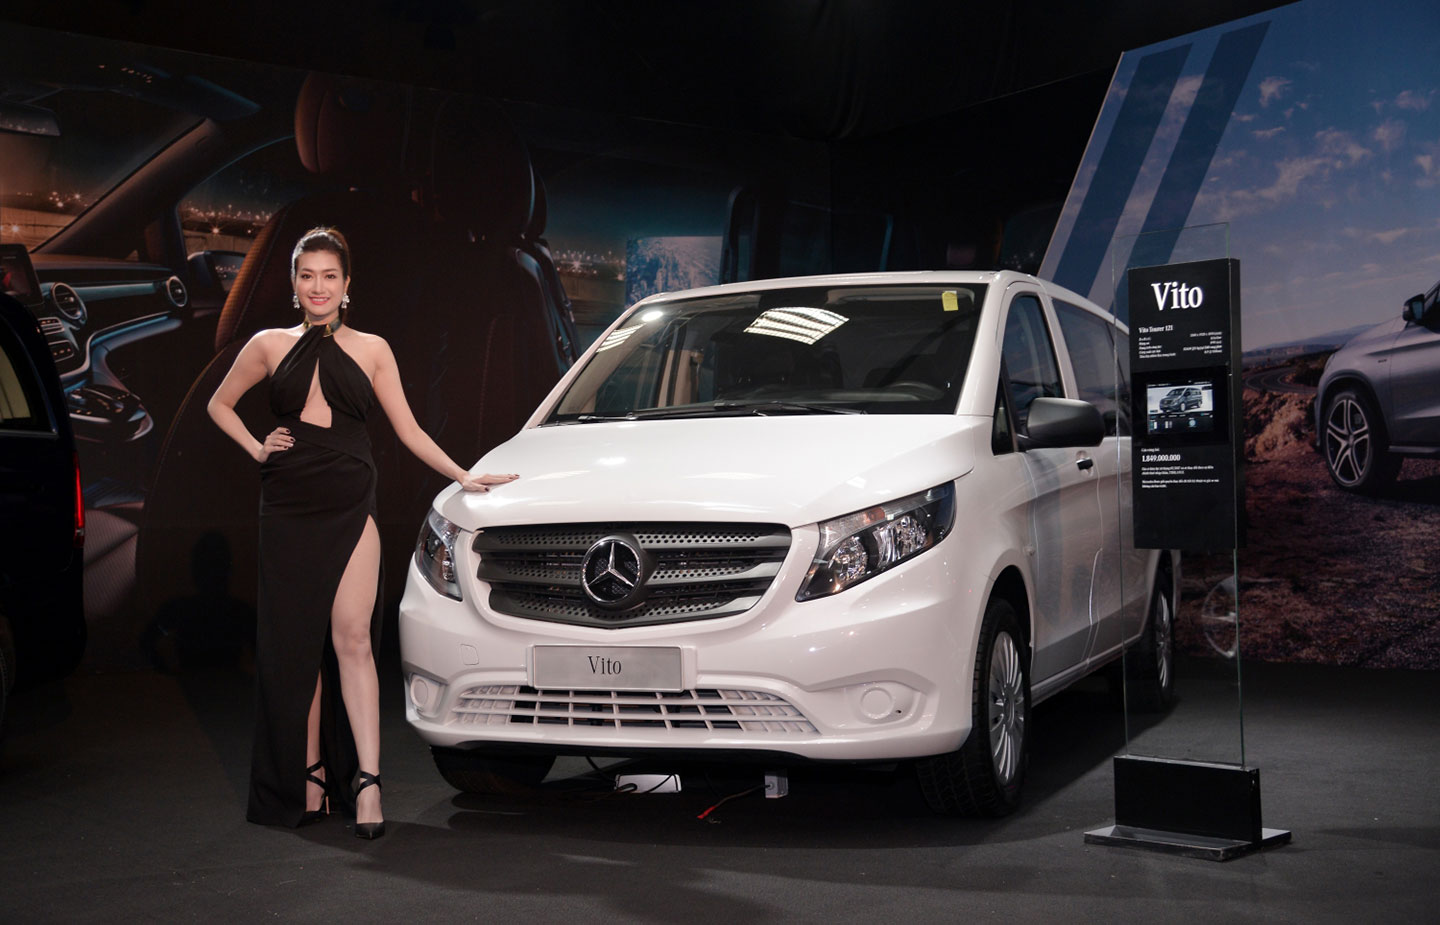 mercedes-benz-fascination-2017-nguoidep-9.jpg